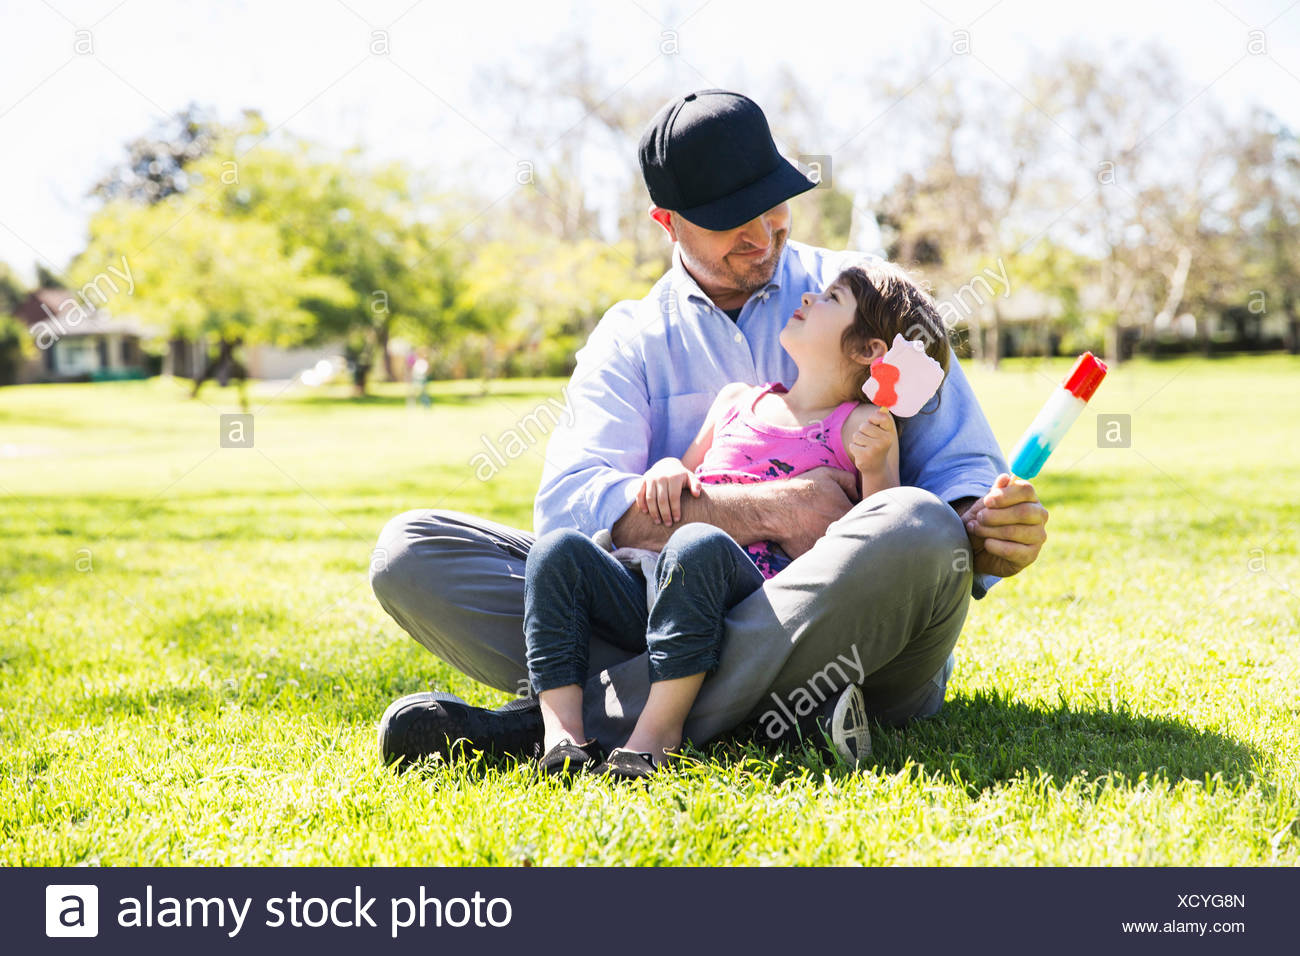 Mid adult man and daughter eating ice lollies in park Stock Photo